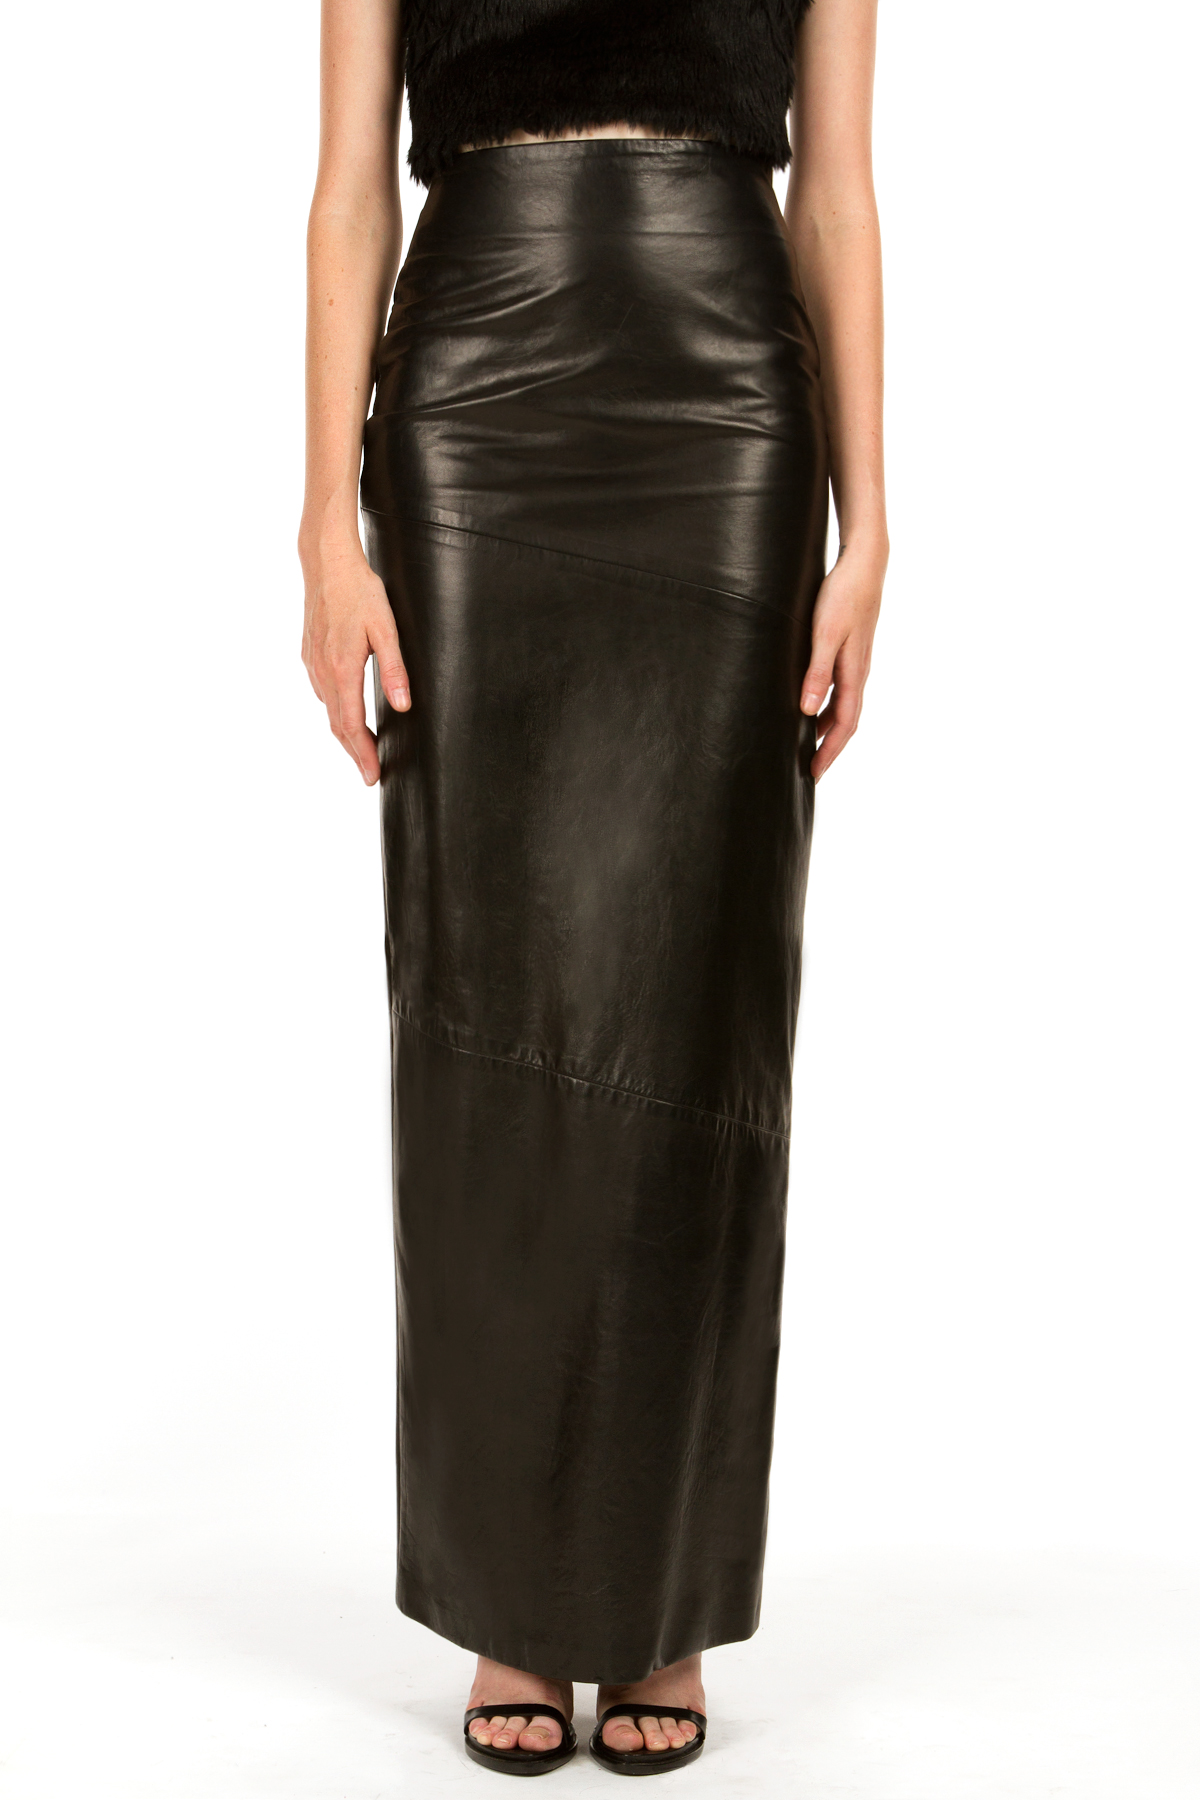 mandy coon moscow nights leather skirt skirts